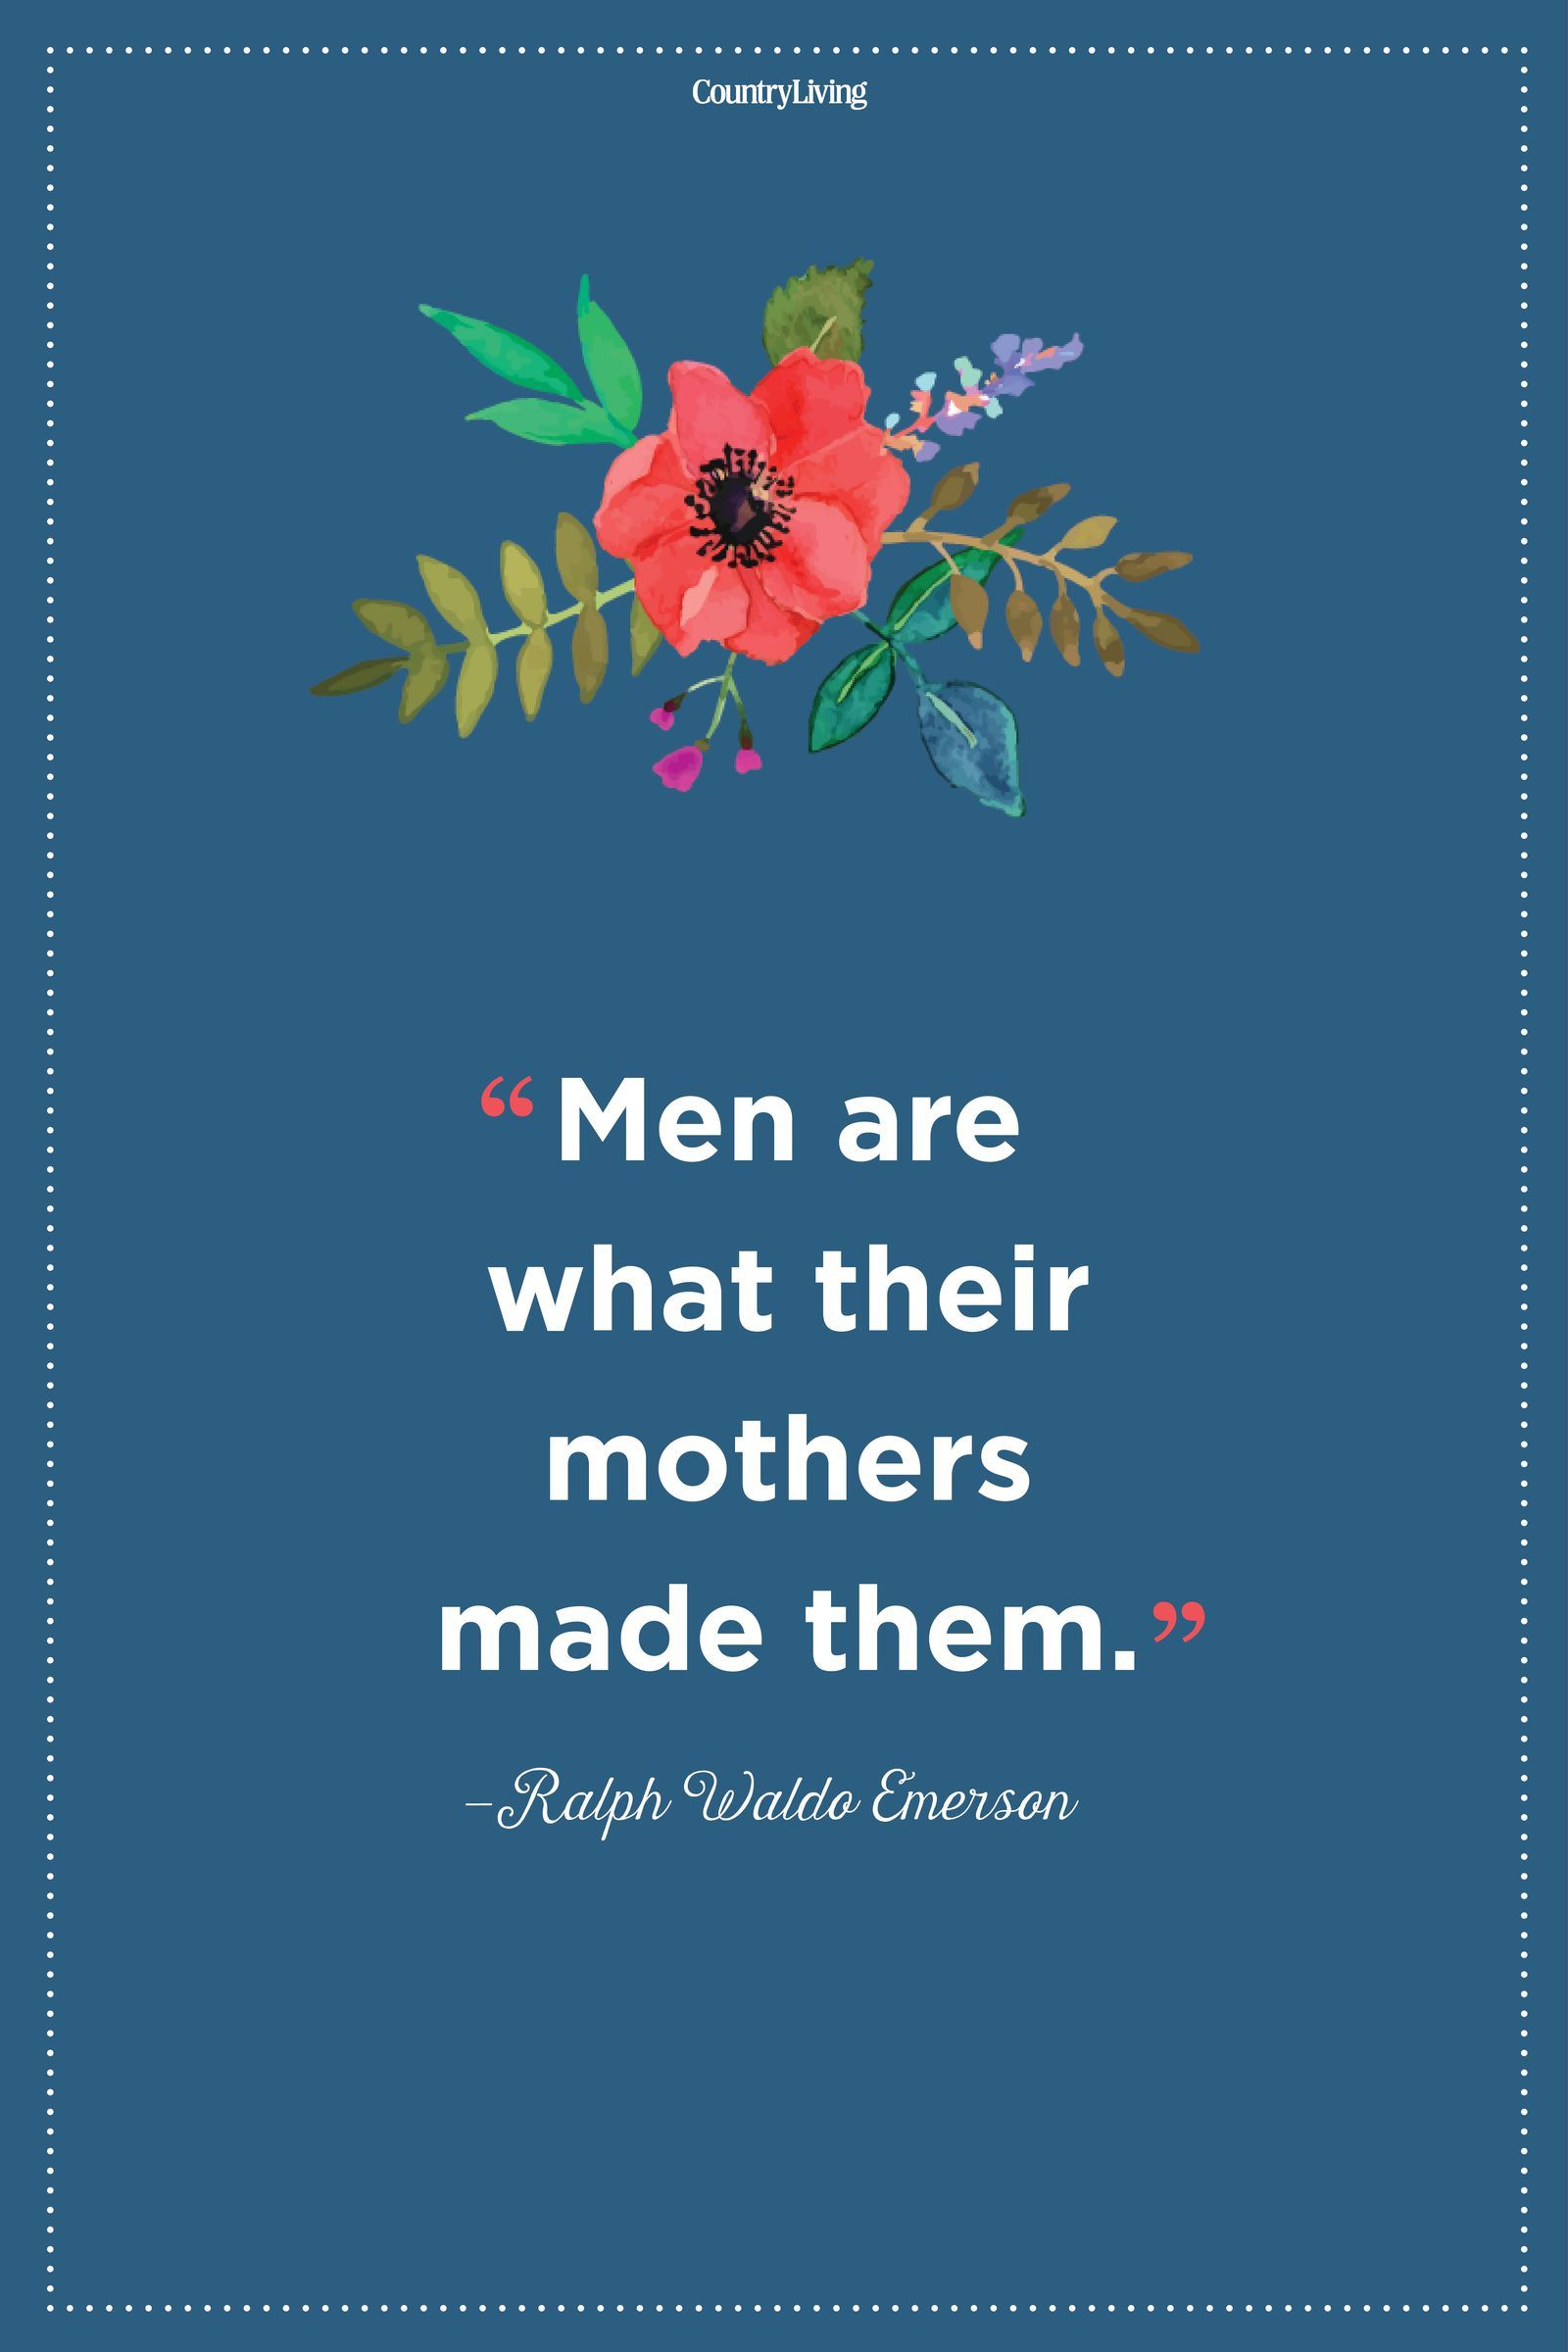 Touching Quotes About The True Meaning Of Motherhood Quotes About Motherhood Mother Quotes Touching Quotes